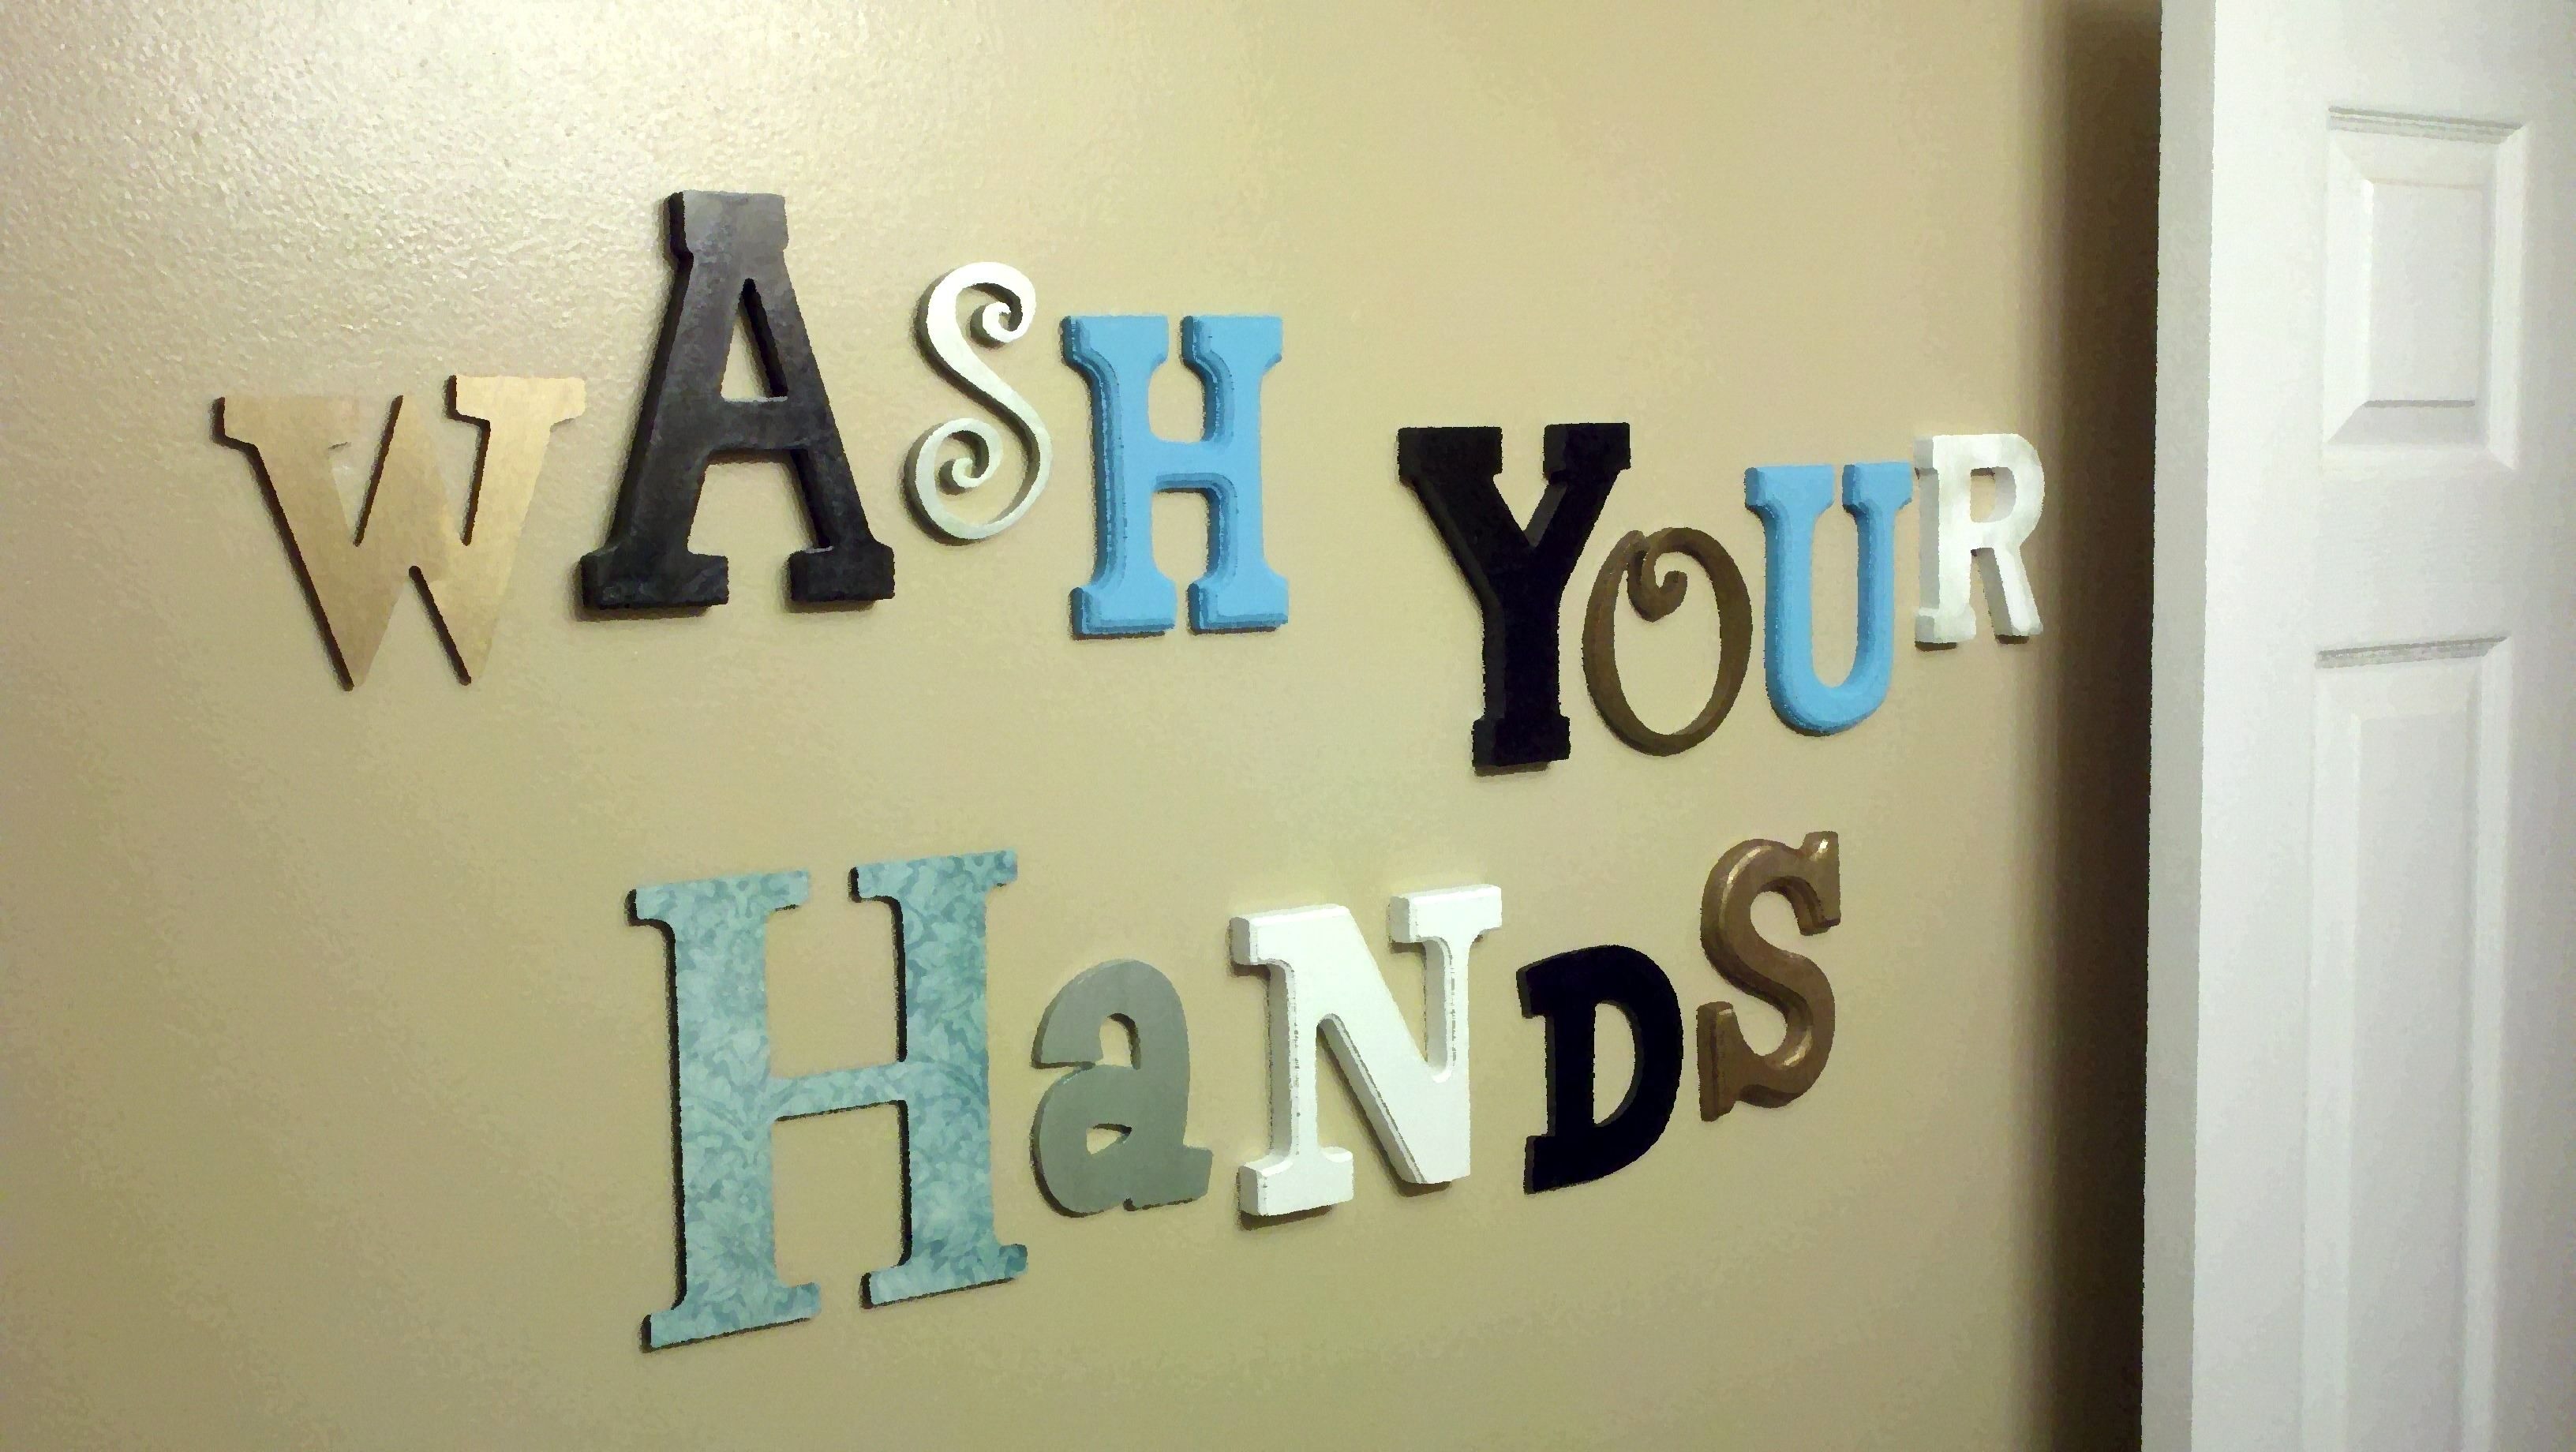 Bathroom wall art wash your hands pin becomes reality in our